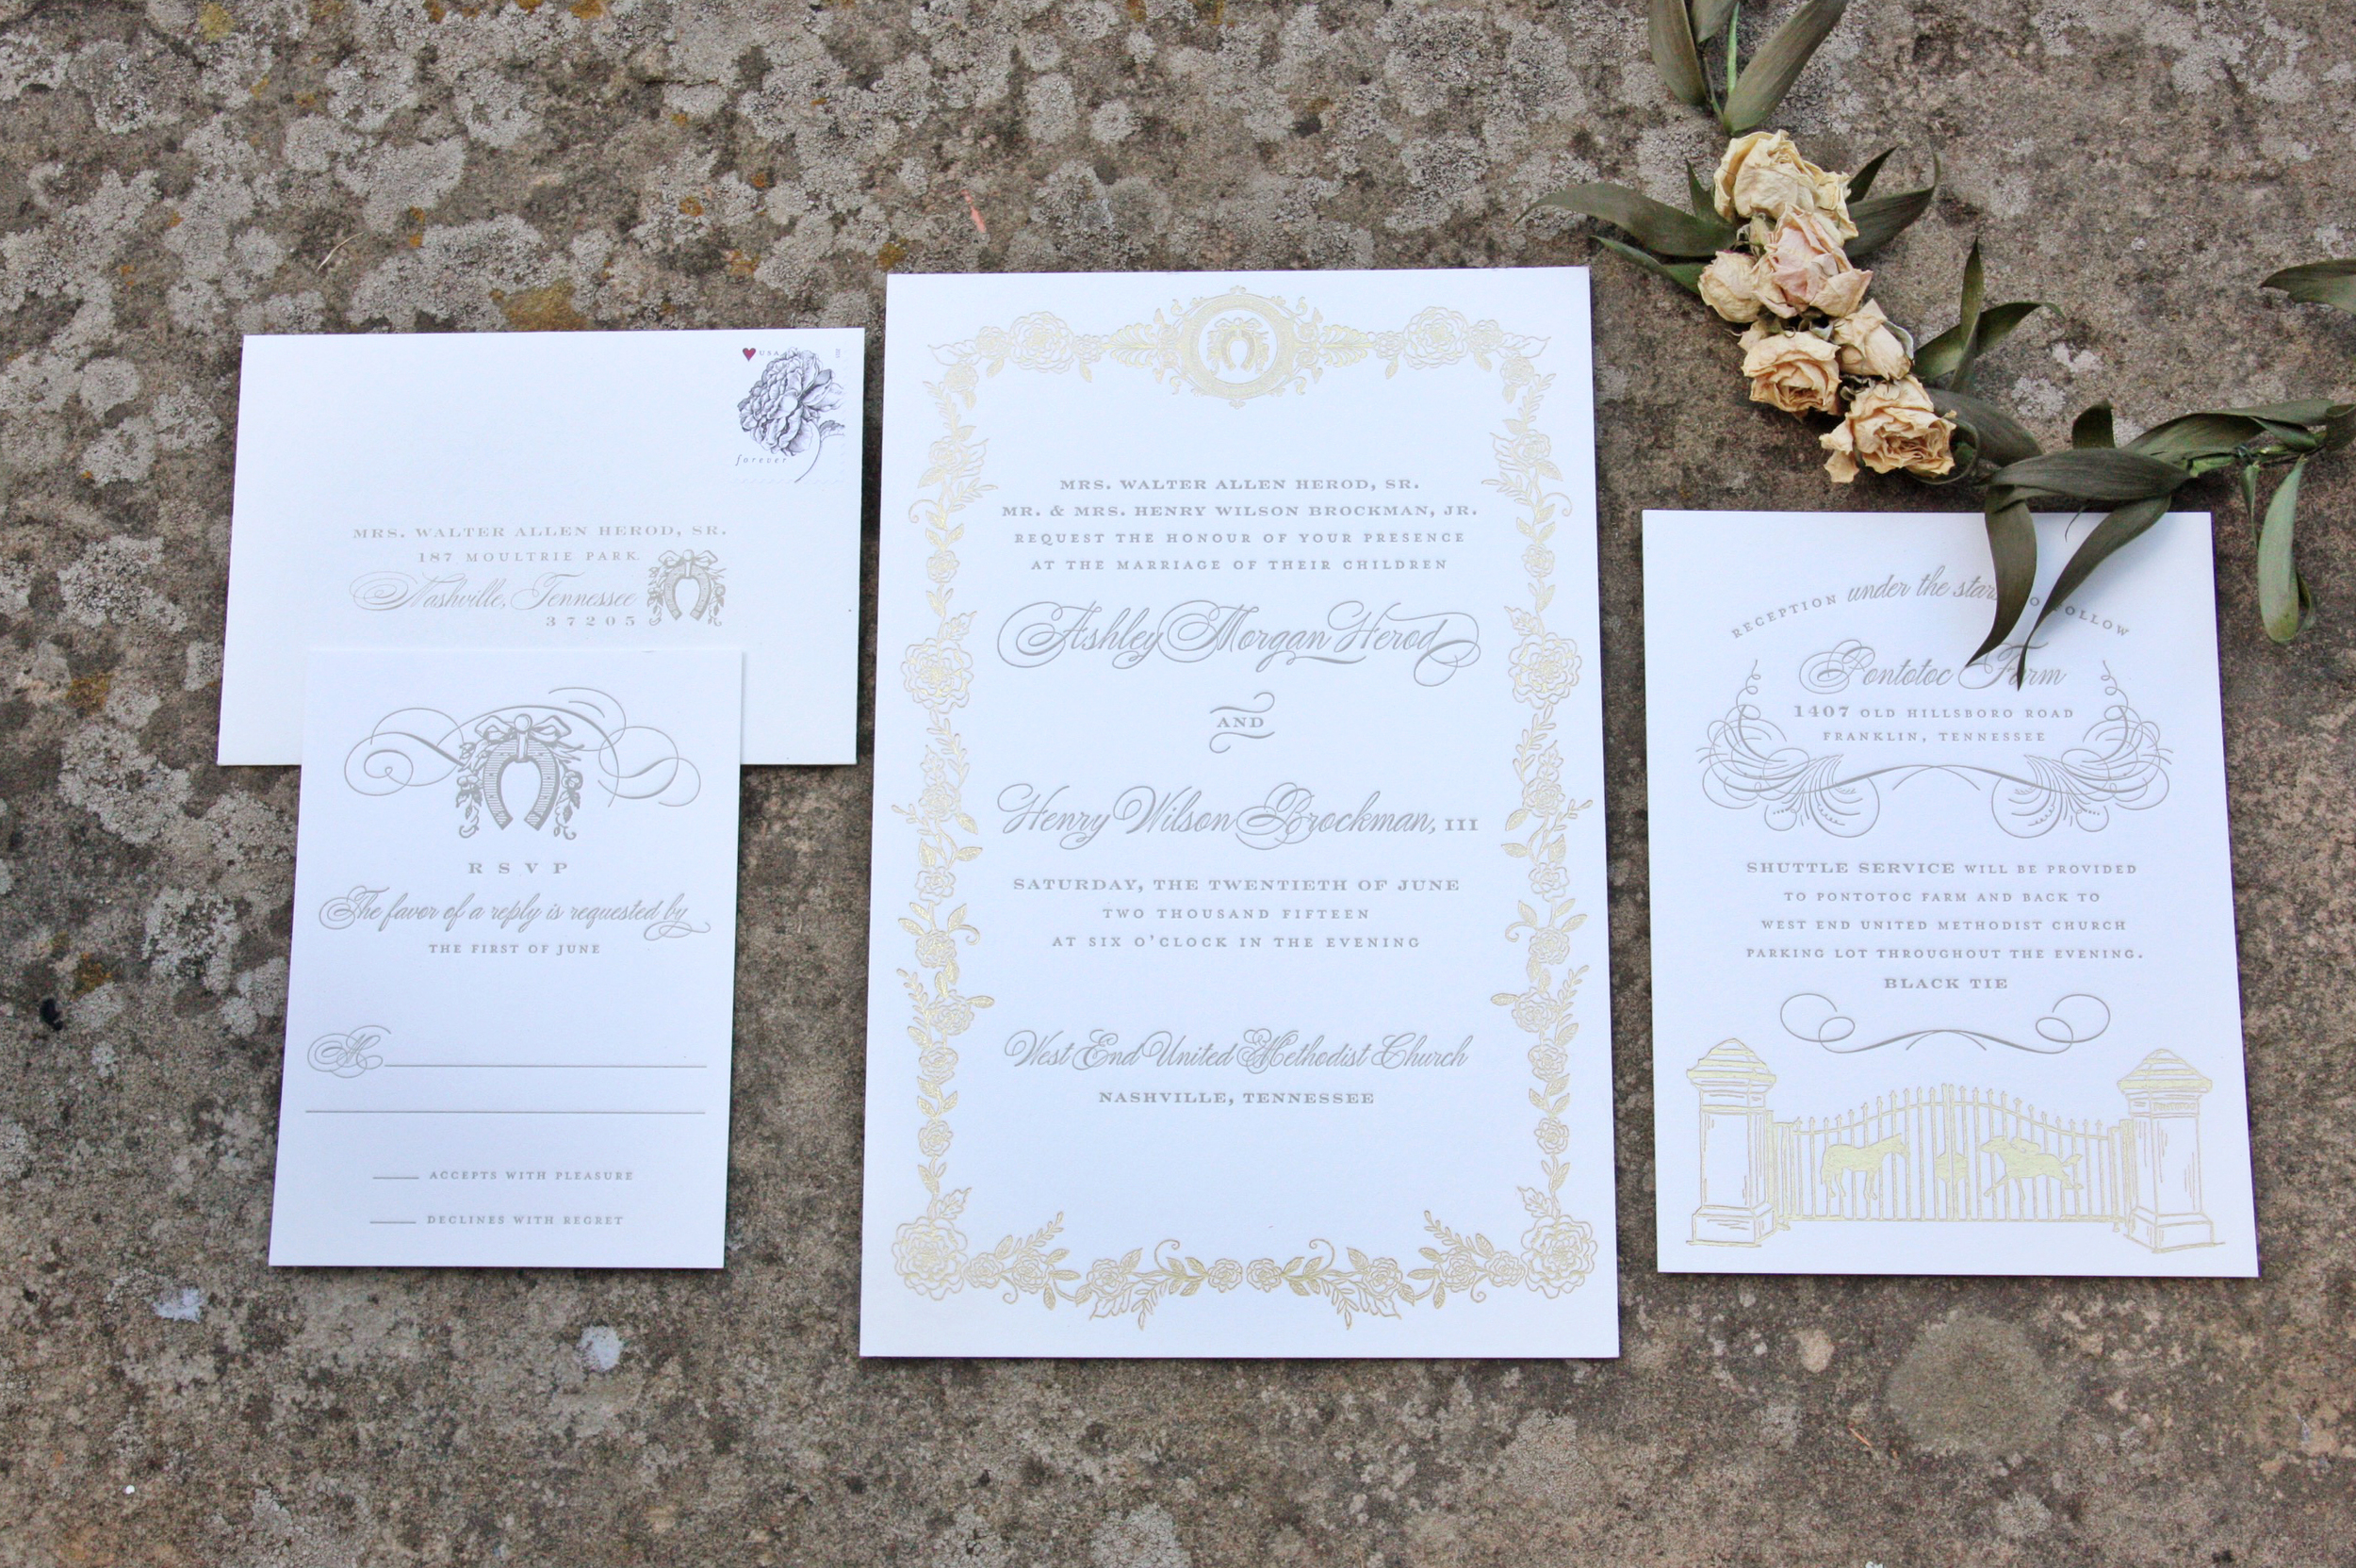 gray letterpress + gold foil illustrations on cranes lettra paper